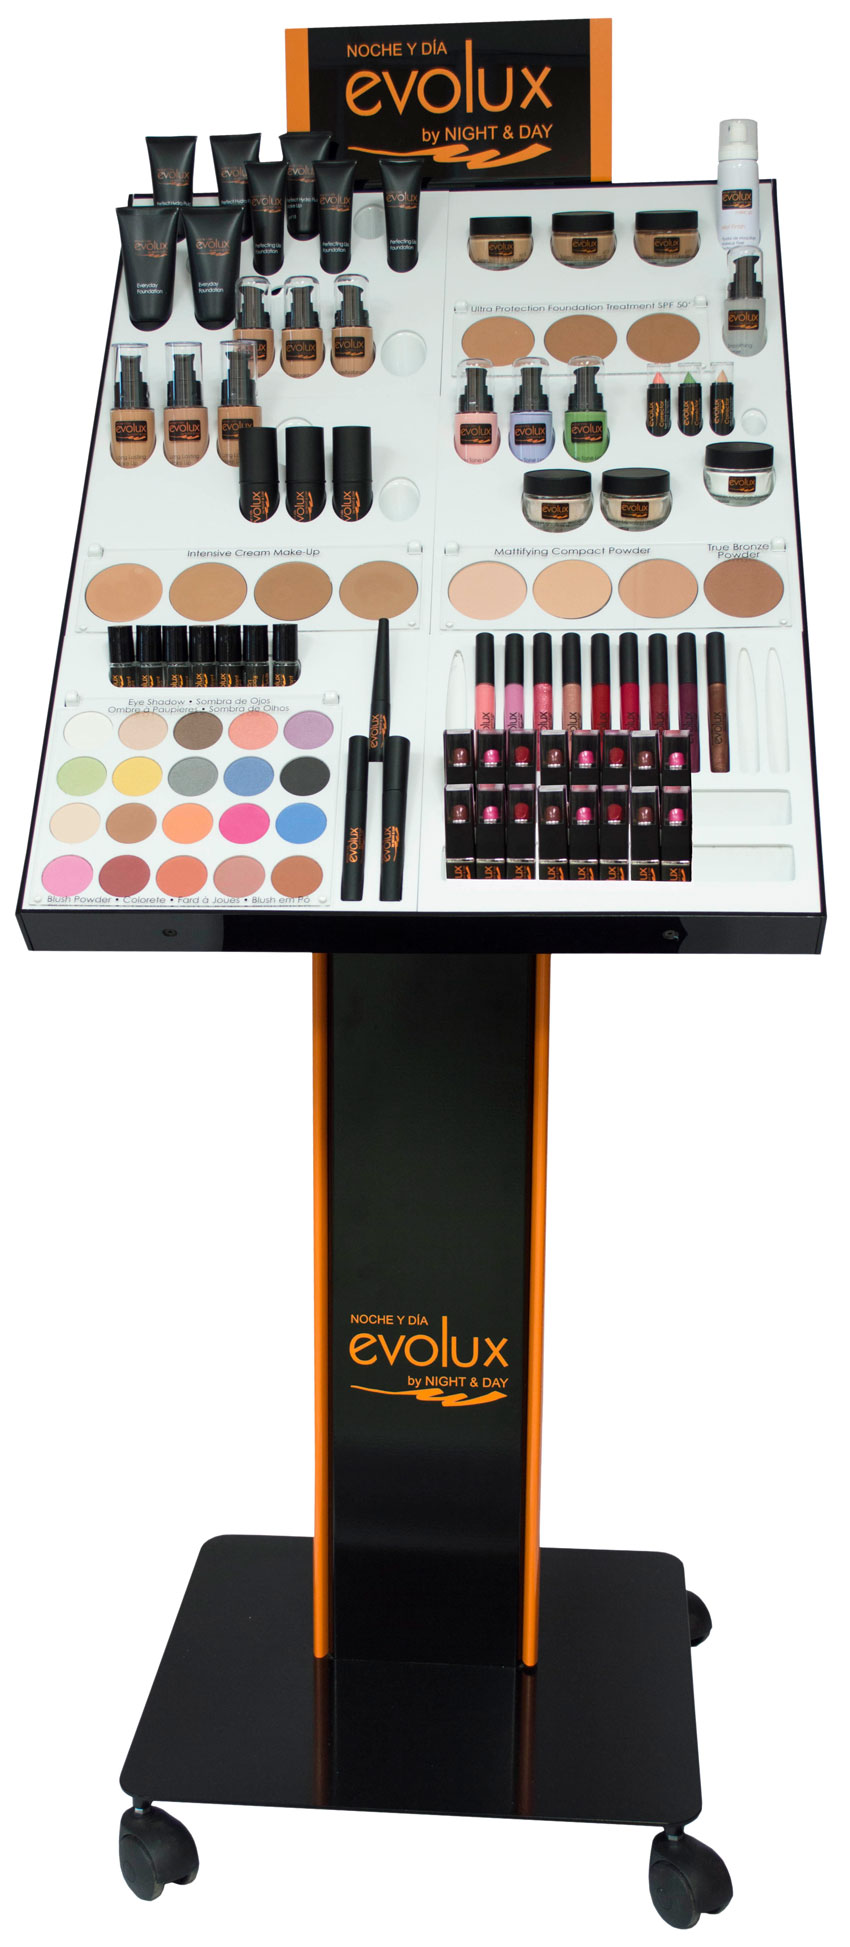 Nuevo expositor de maquillaje profesional Evolux Make Up